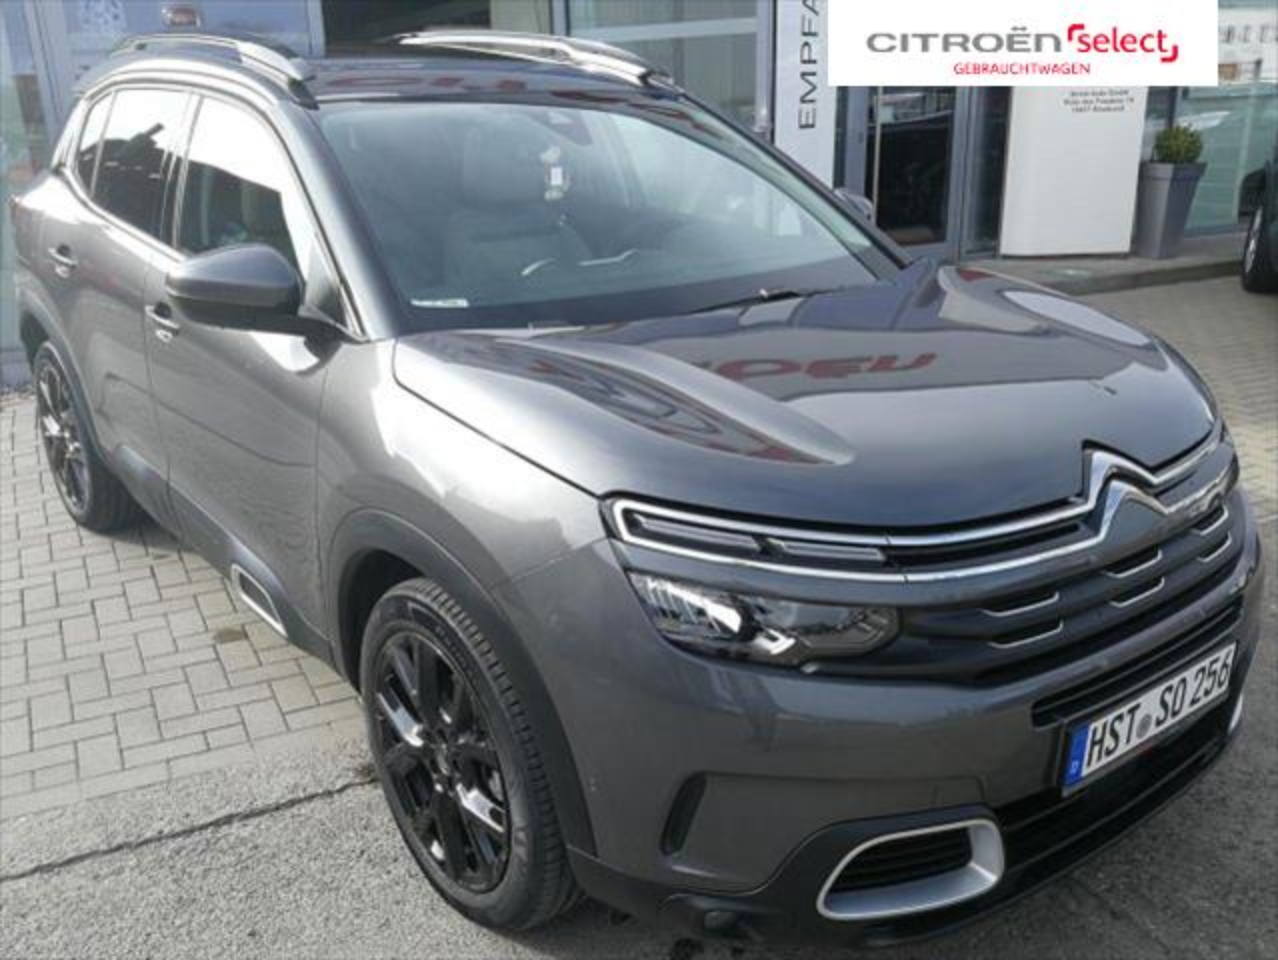 Citroën C5 Aircross 1.6 PureTech 180 Feel EURO 6d-TEMP